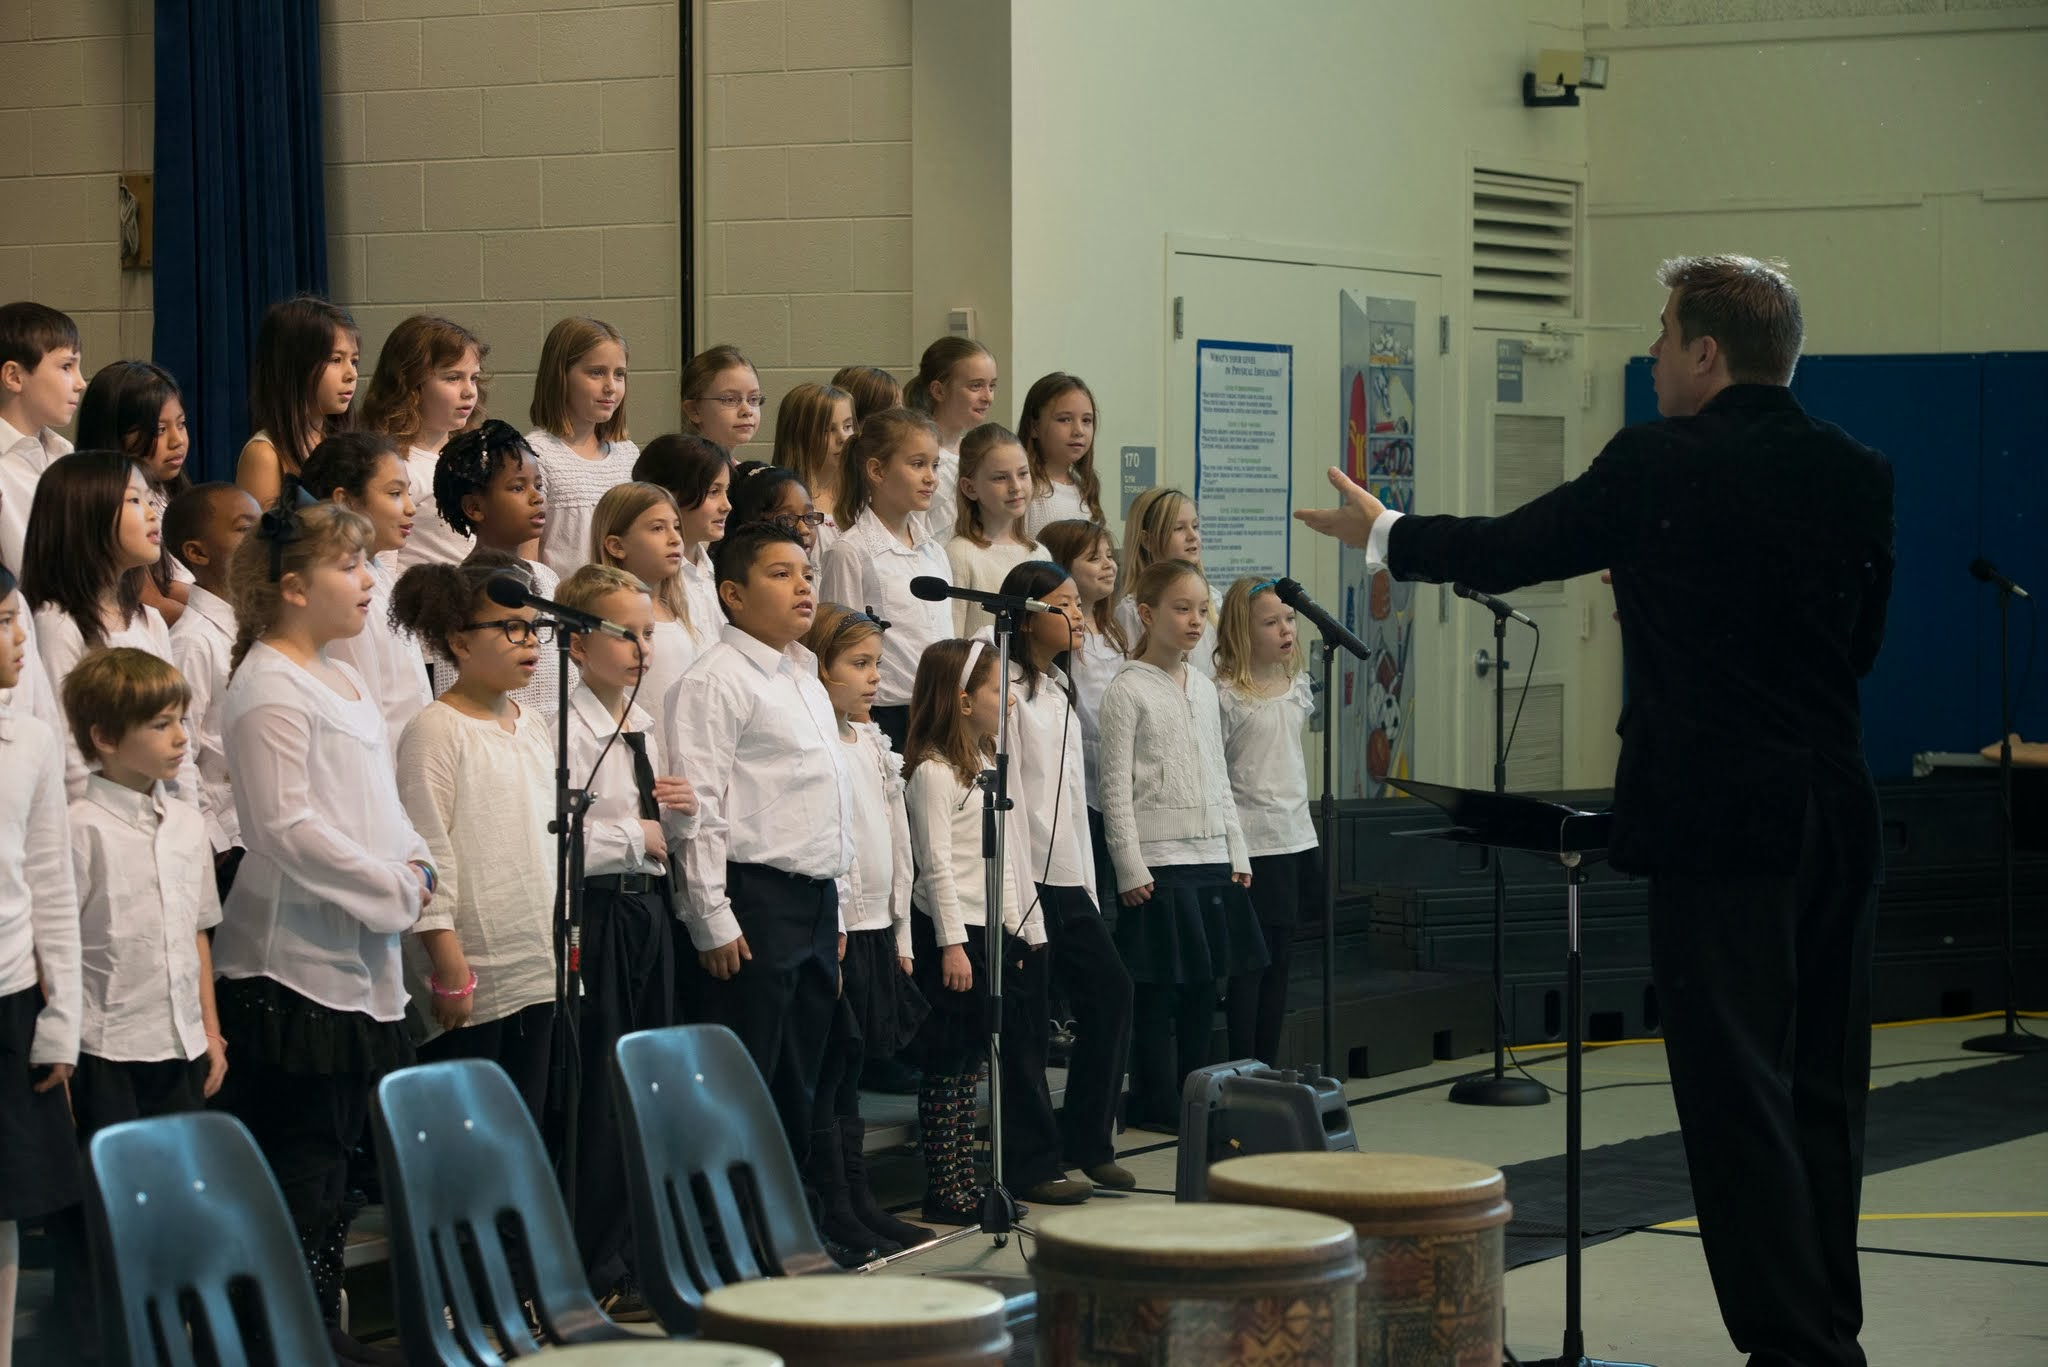 Scenes from our Winter Concert